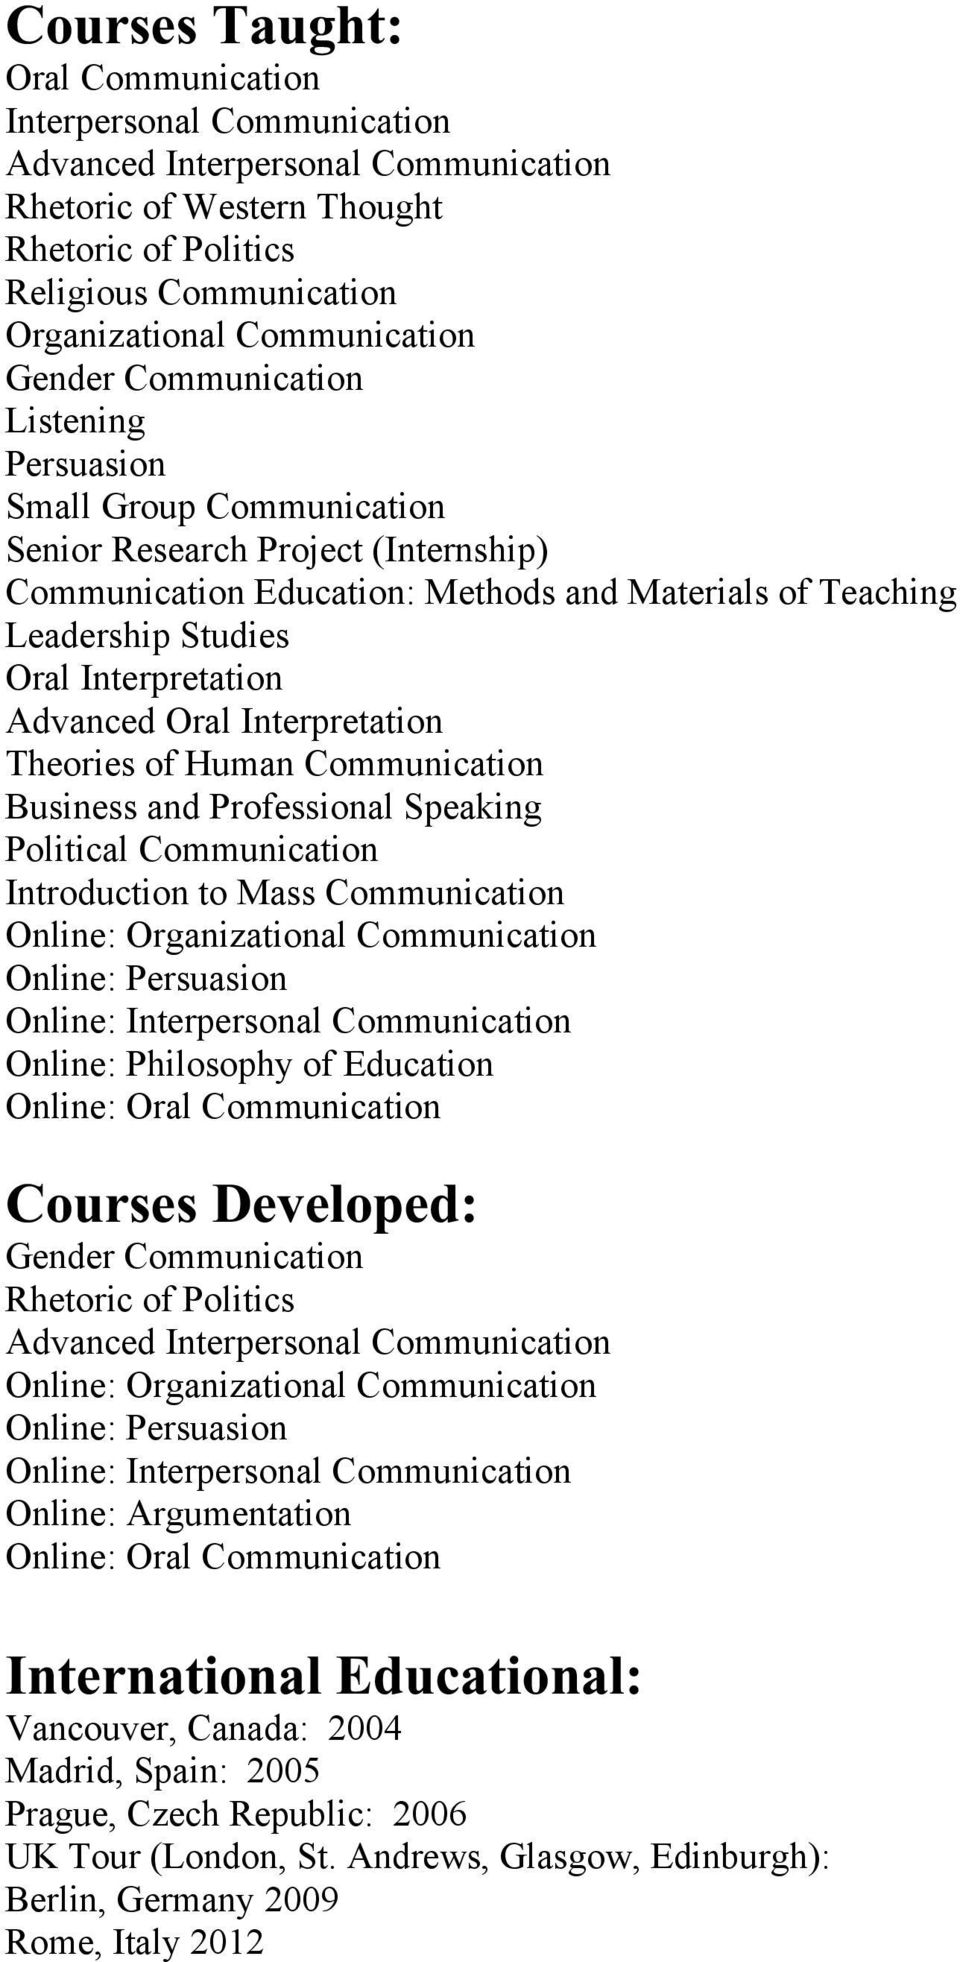 Advanced Oral Interpretation Theories of Human Communication Business and Professional Speaking Political Communication Introduction to Mass Communication Online: Organizational Communication Online: